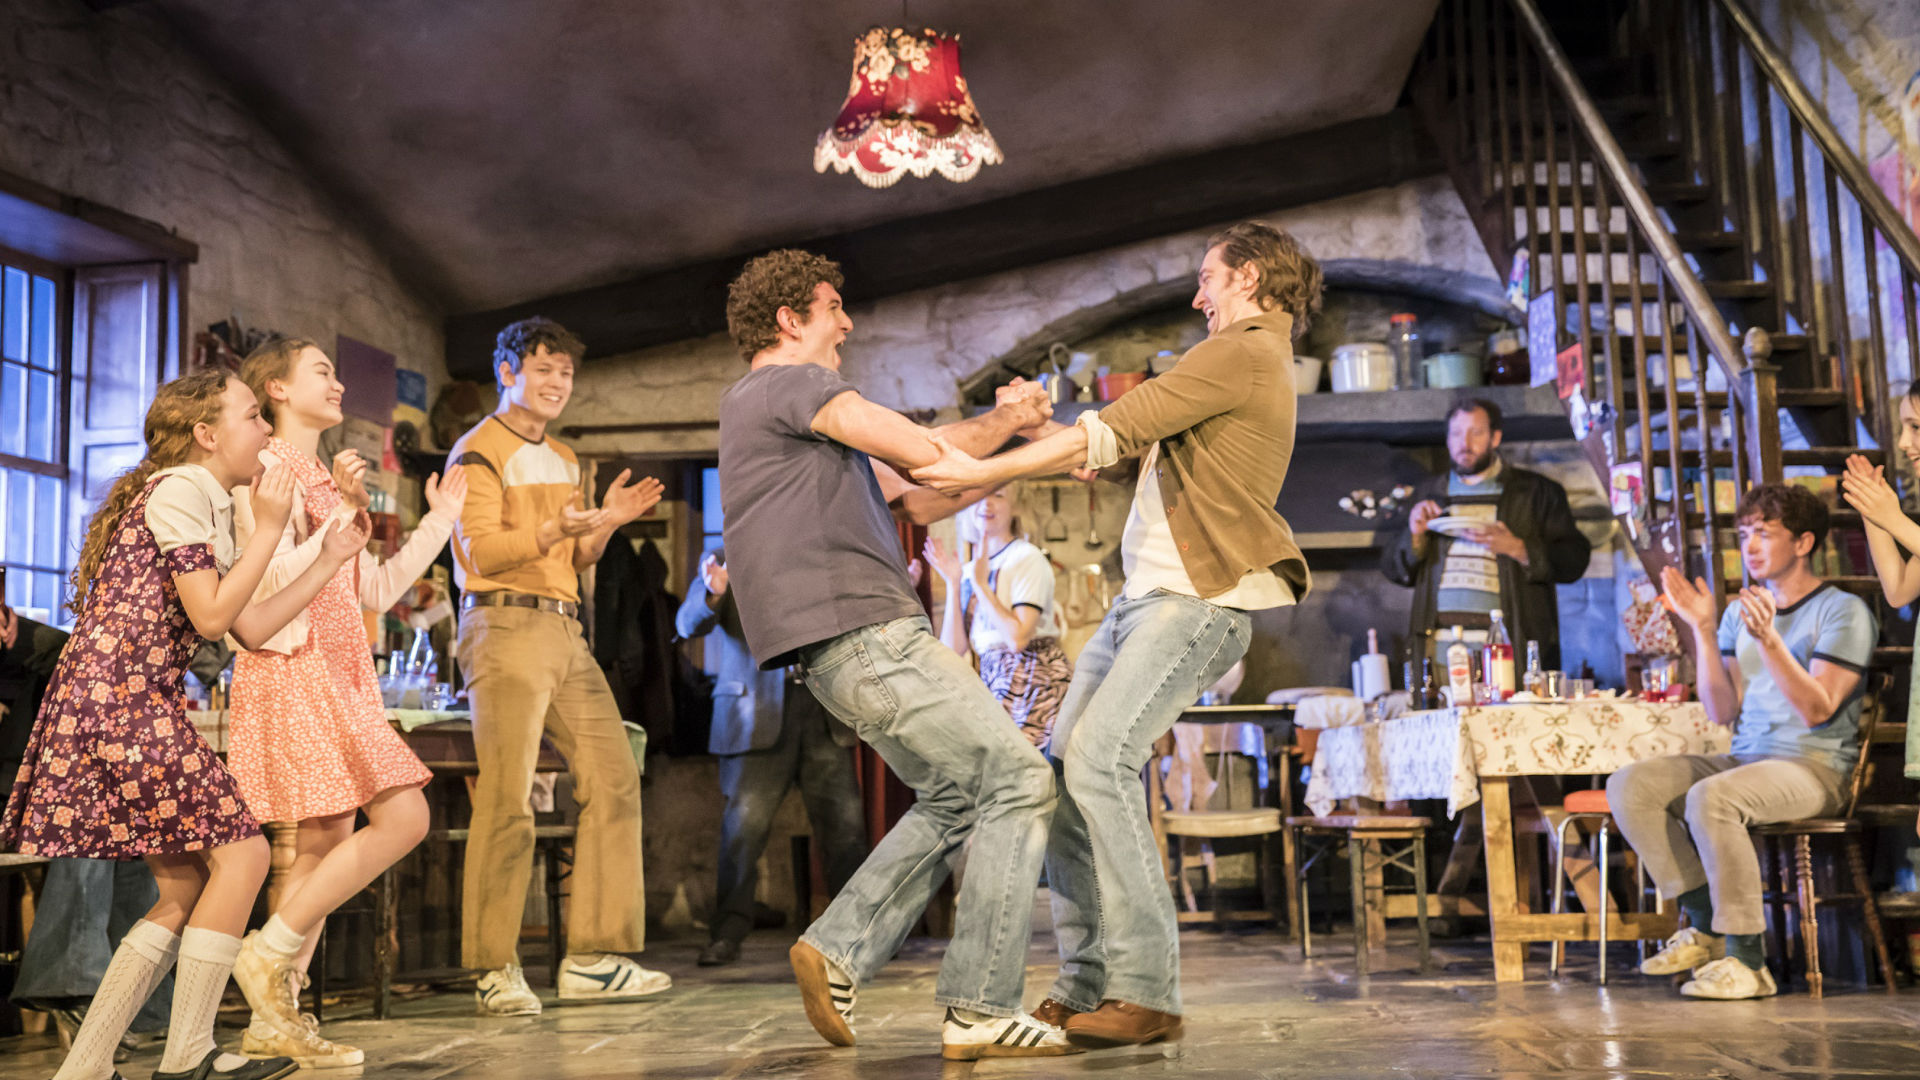 The cast dance on stage during The Ferryman at Gielgud Theatre. Photo credit: Johan Persson. Image courtesy of The Corner Shop PR.